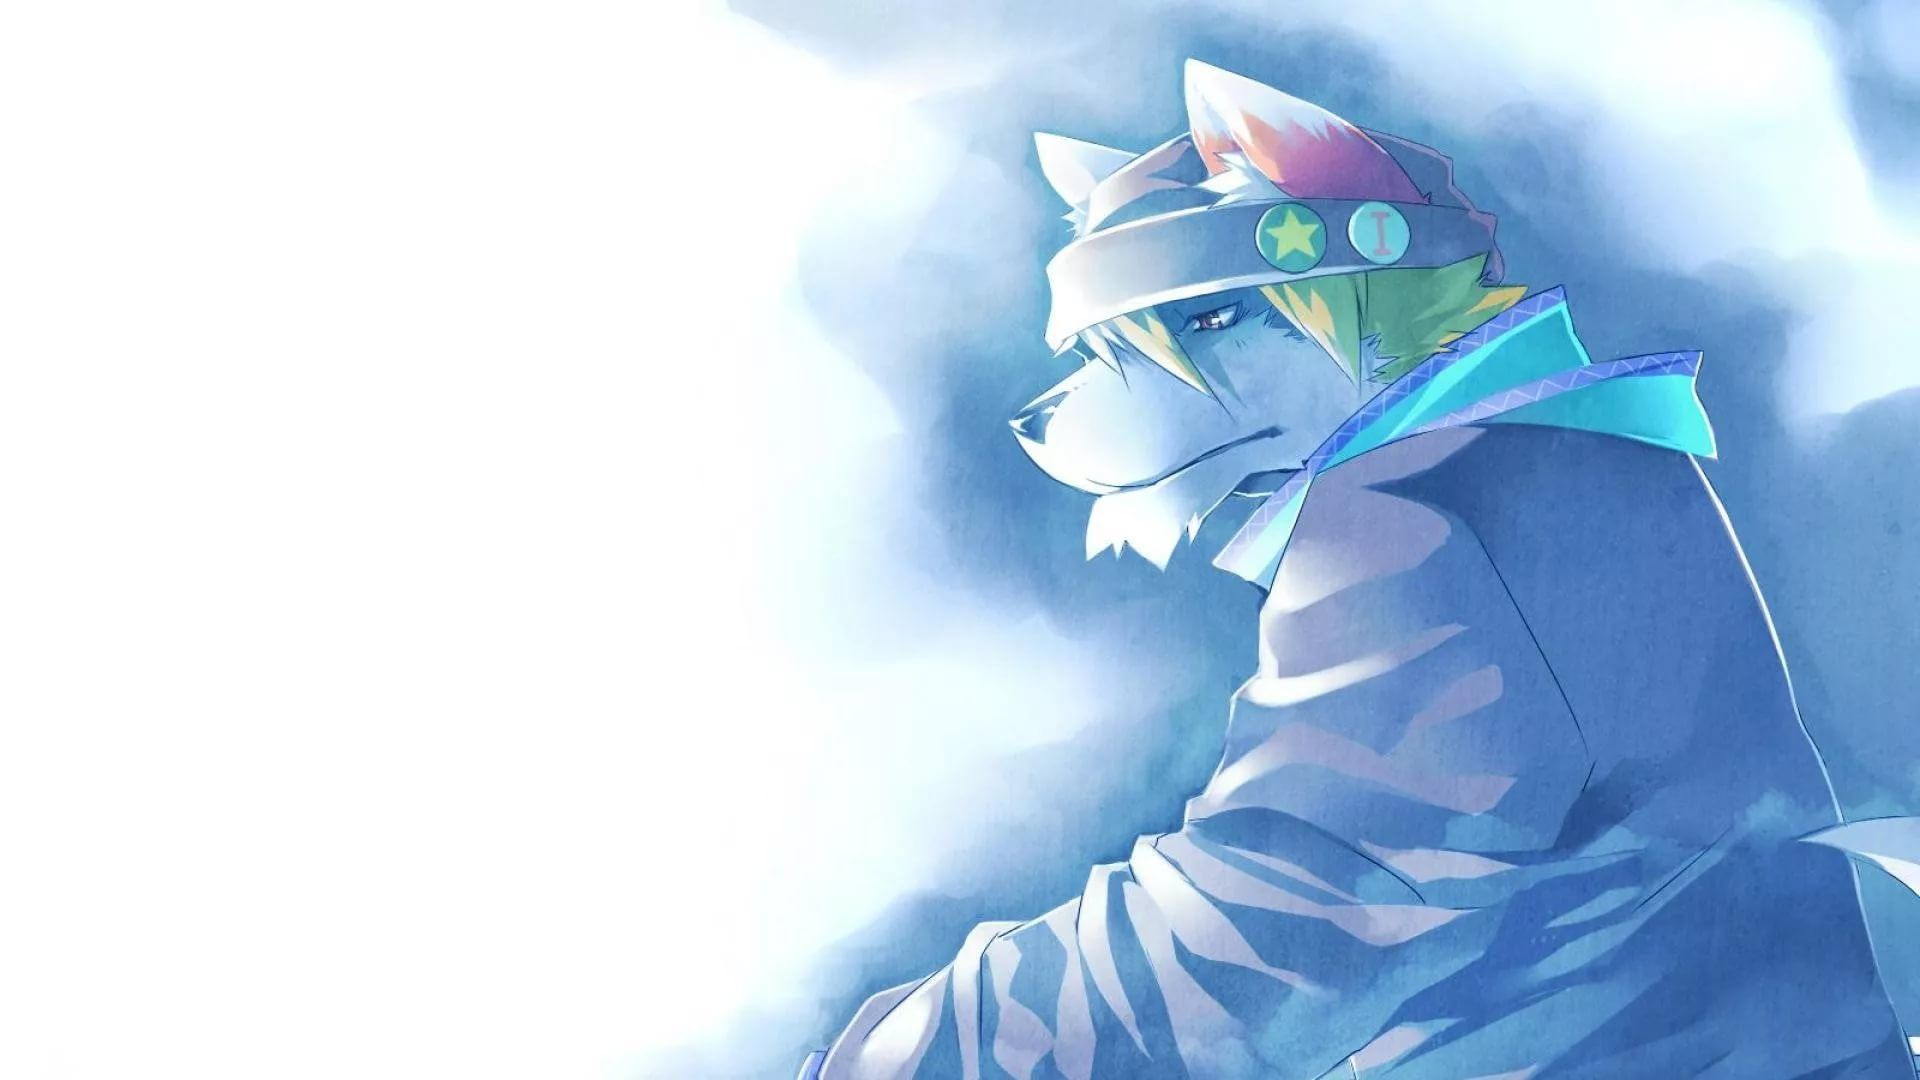 Furry Background Cool HD Wallpaper